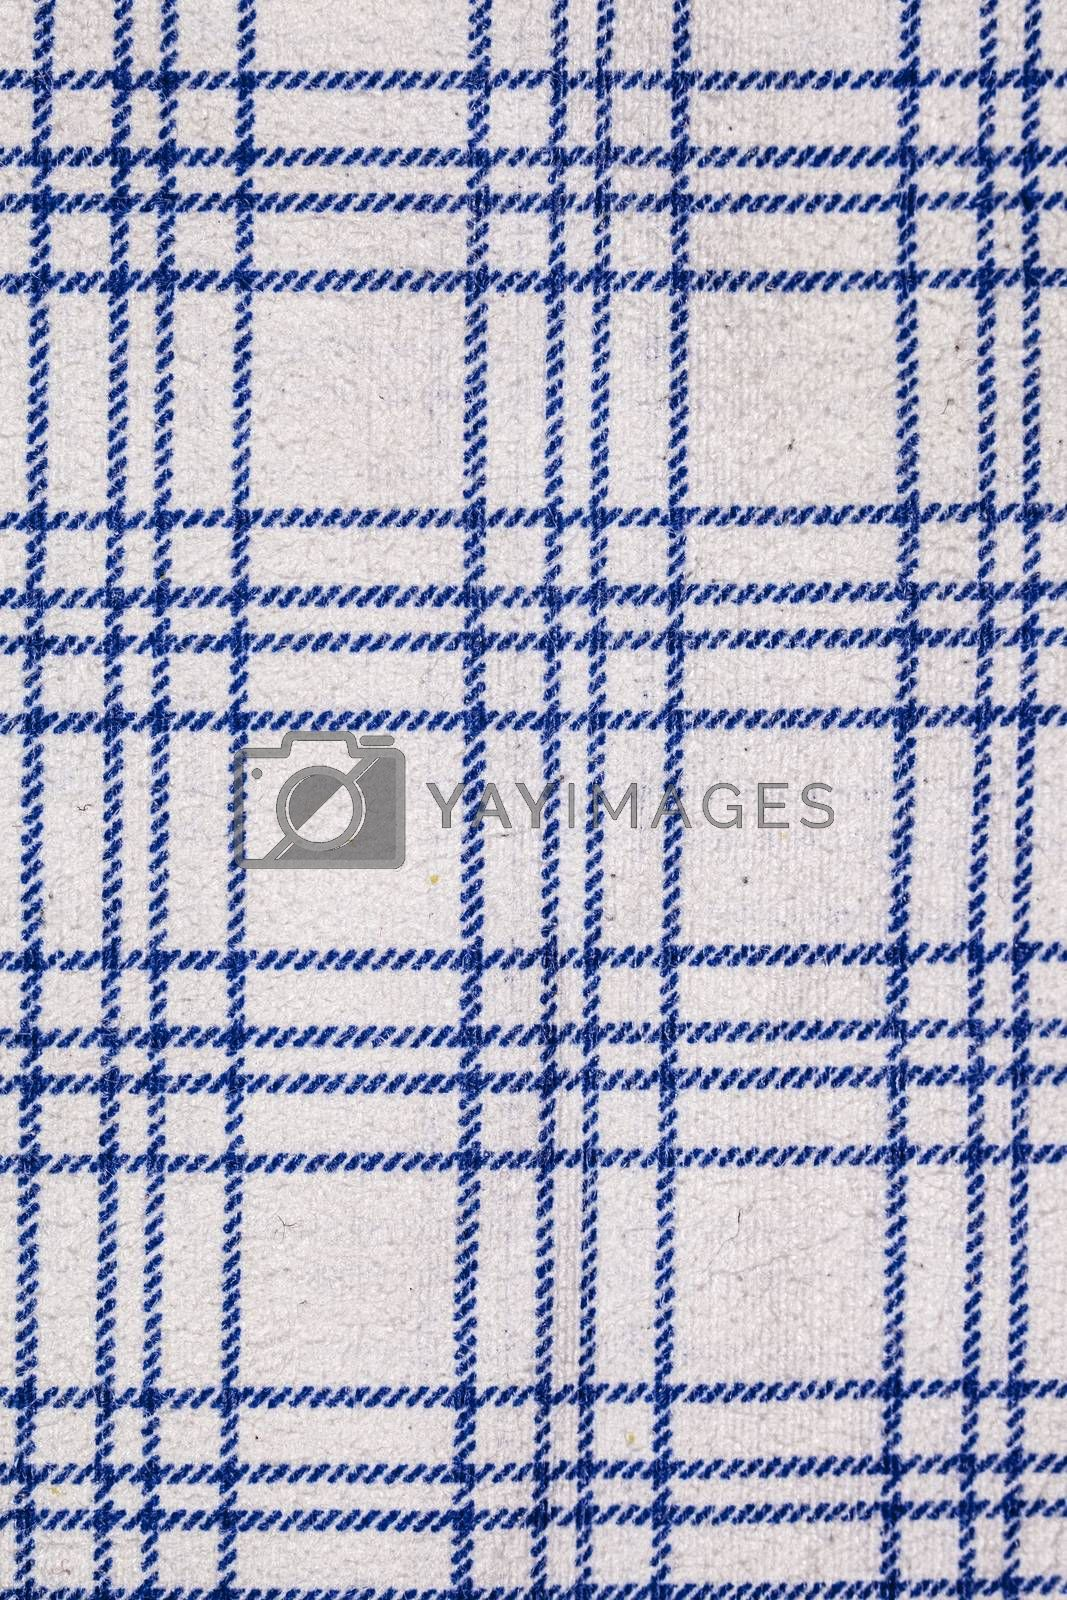 blue grid on a white background